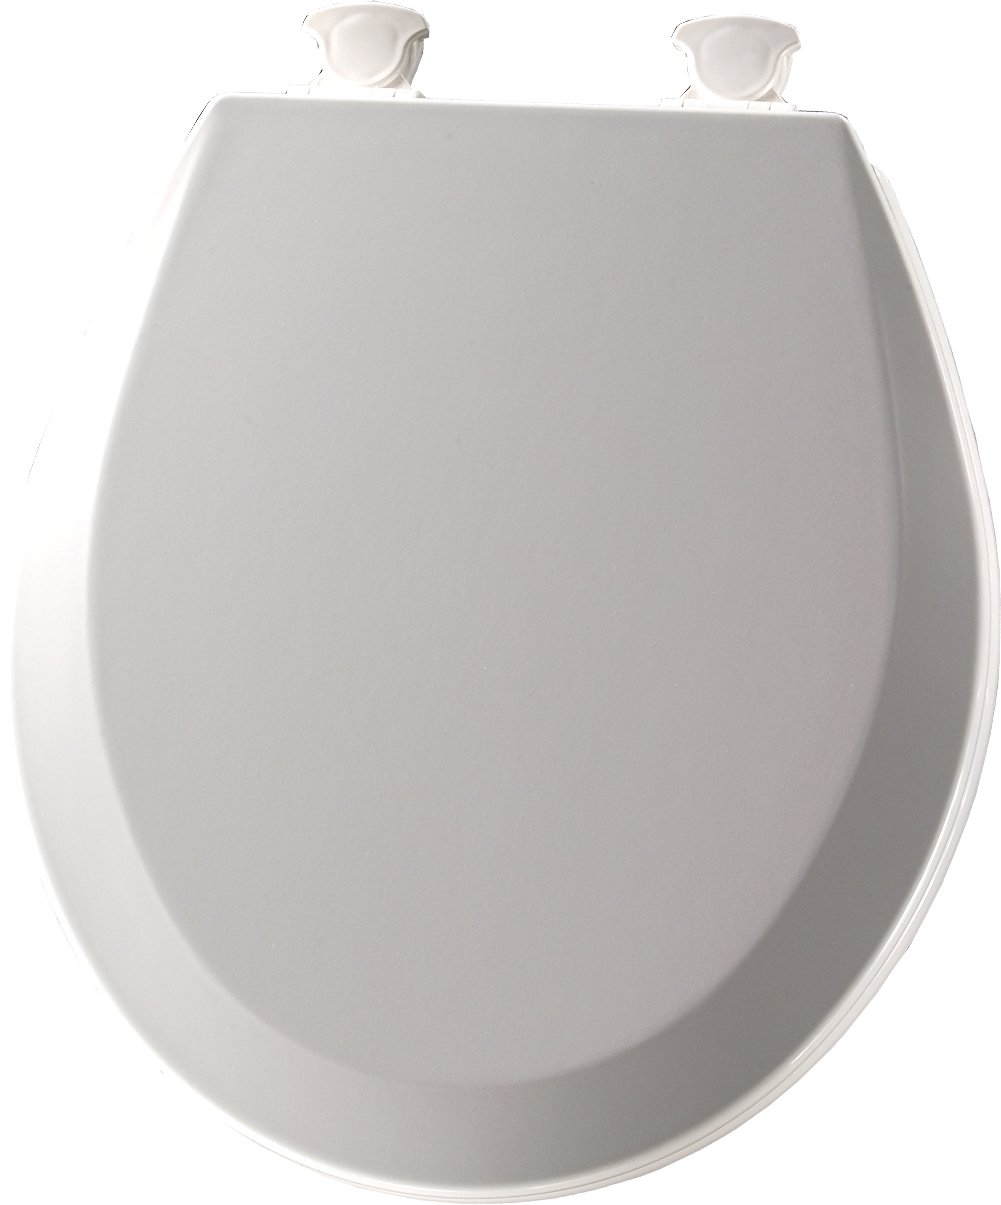 Bemis 500EC Round Closed-Front Toilet Seat and Lid with Easy-Clean & Change Tec, Ice Grey